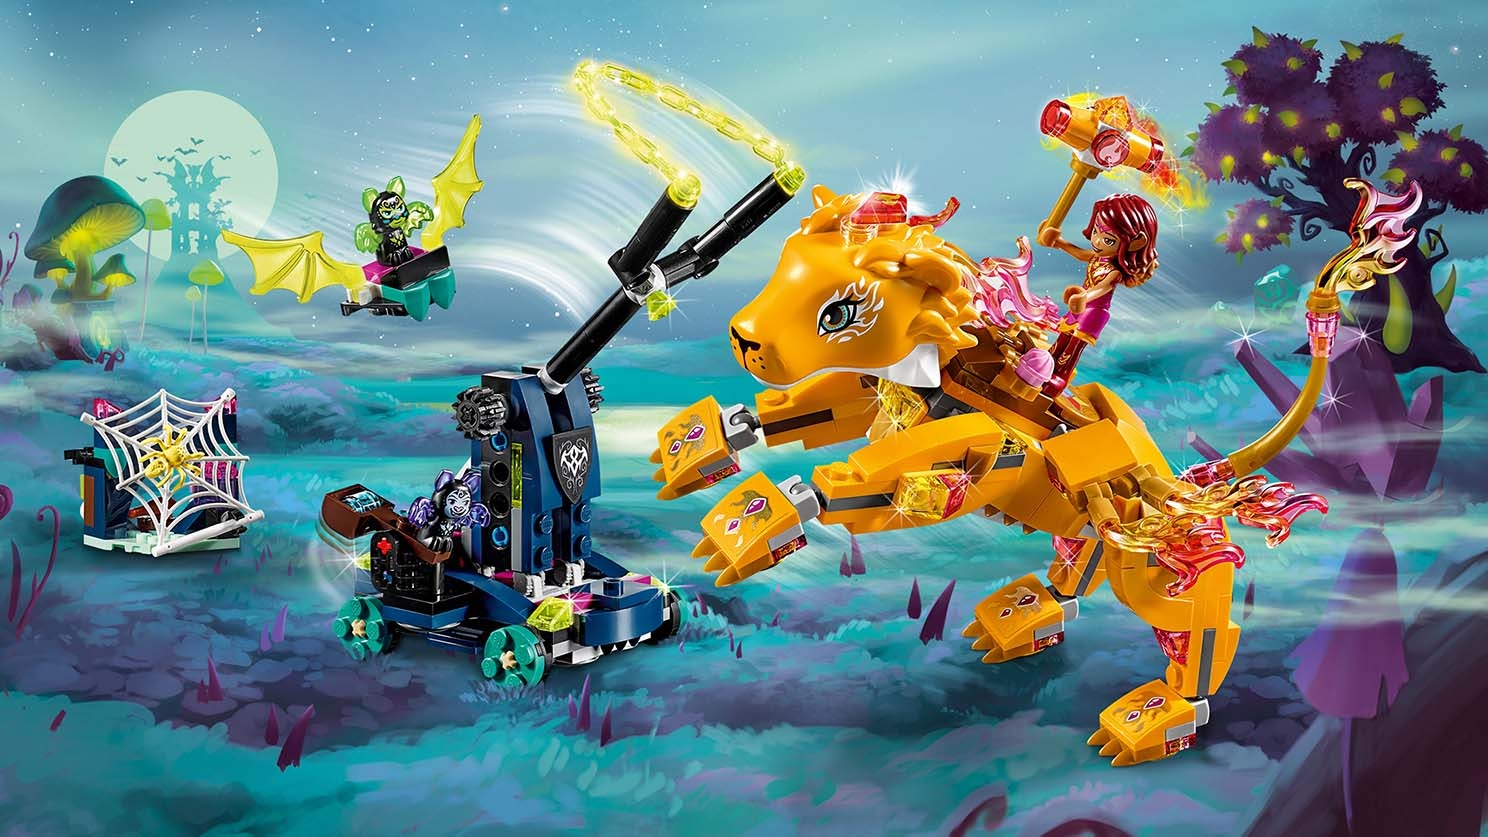 LEGO Elves - 41192 Azari & the fire Lion Capture - Help Azari and Rowan the Guardian Fire Lion unite their magic to fight off the shadow bats and try to remove the evil chain from around Rowan's neck.